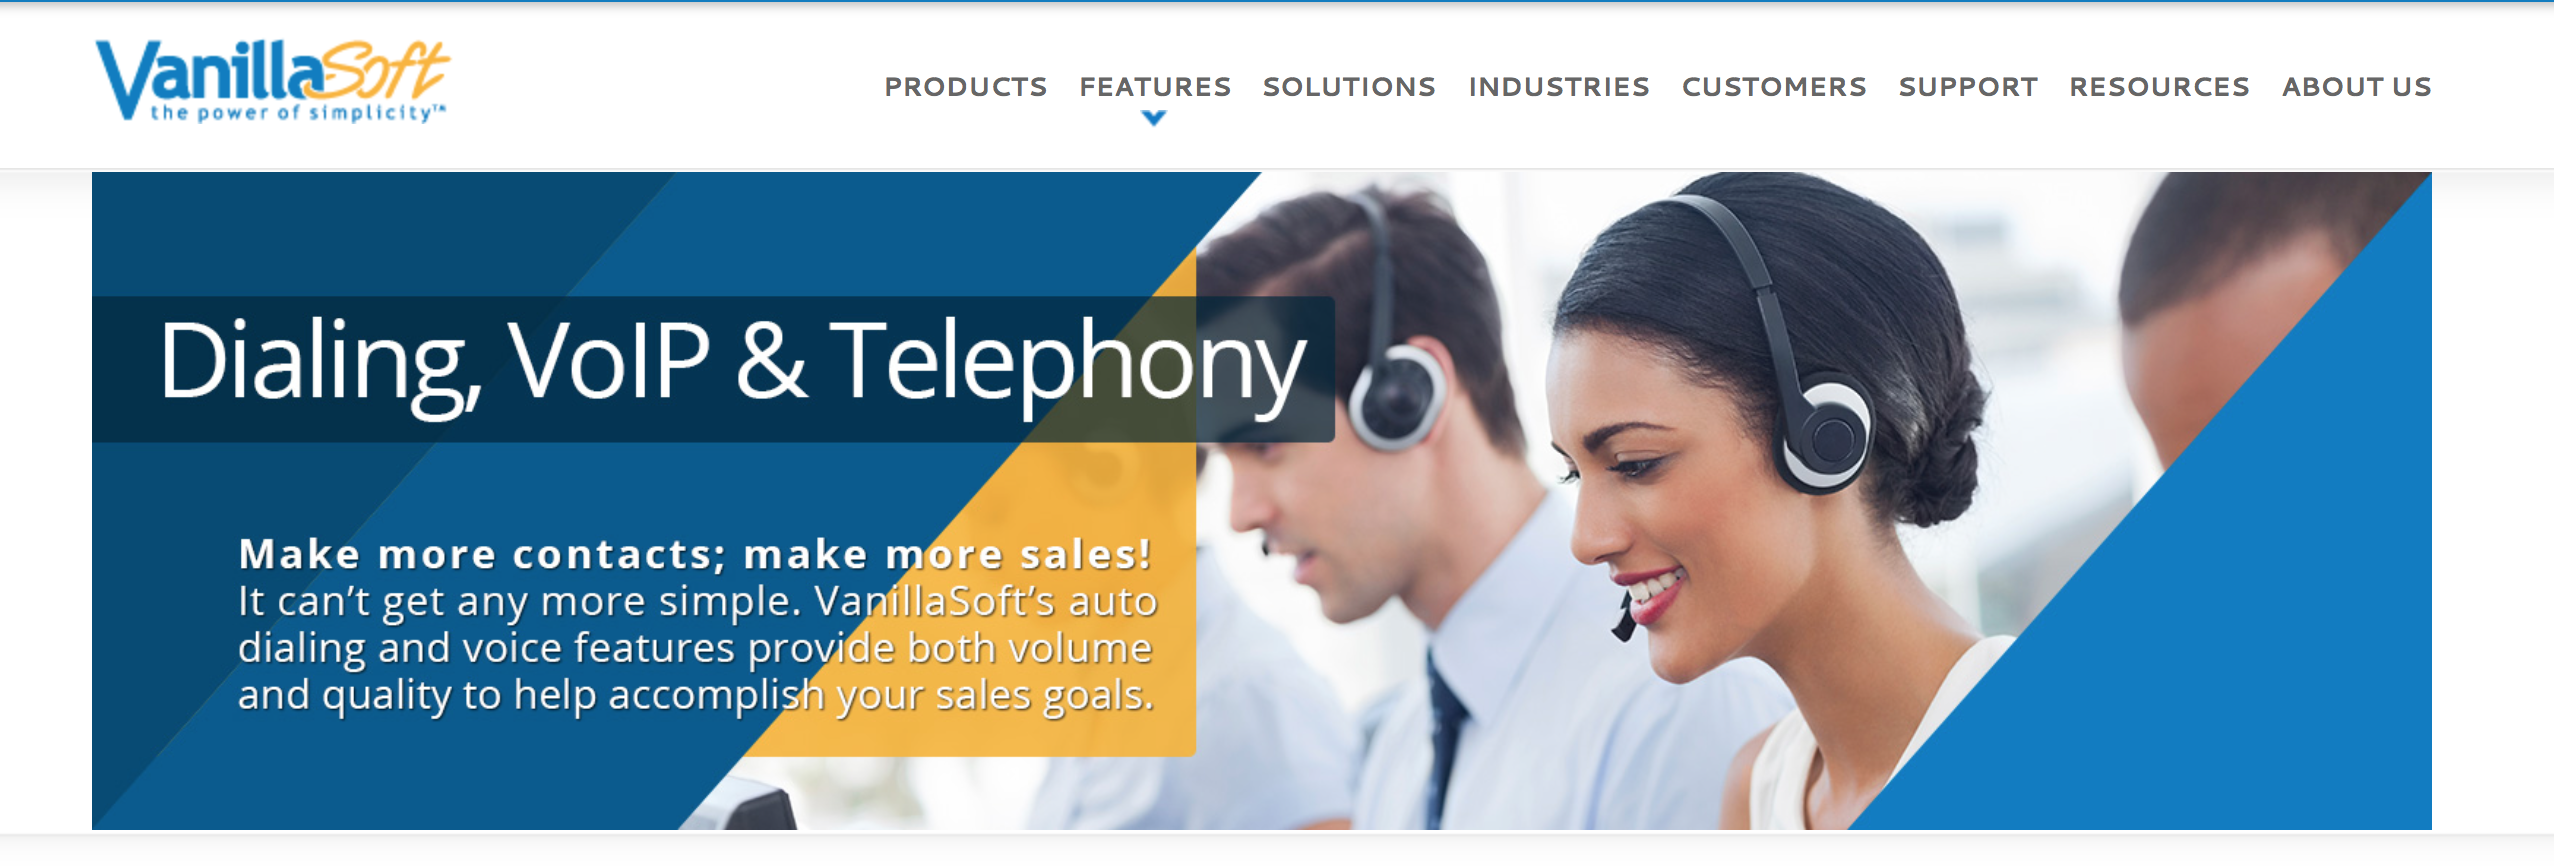 Picture of the homepage of vanillasoft.com